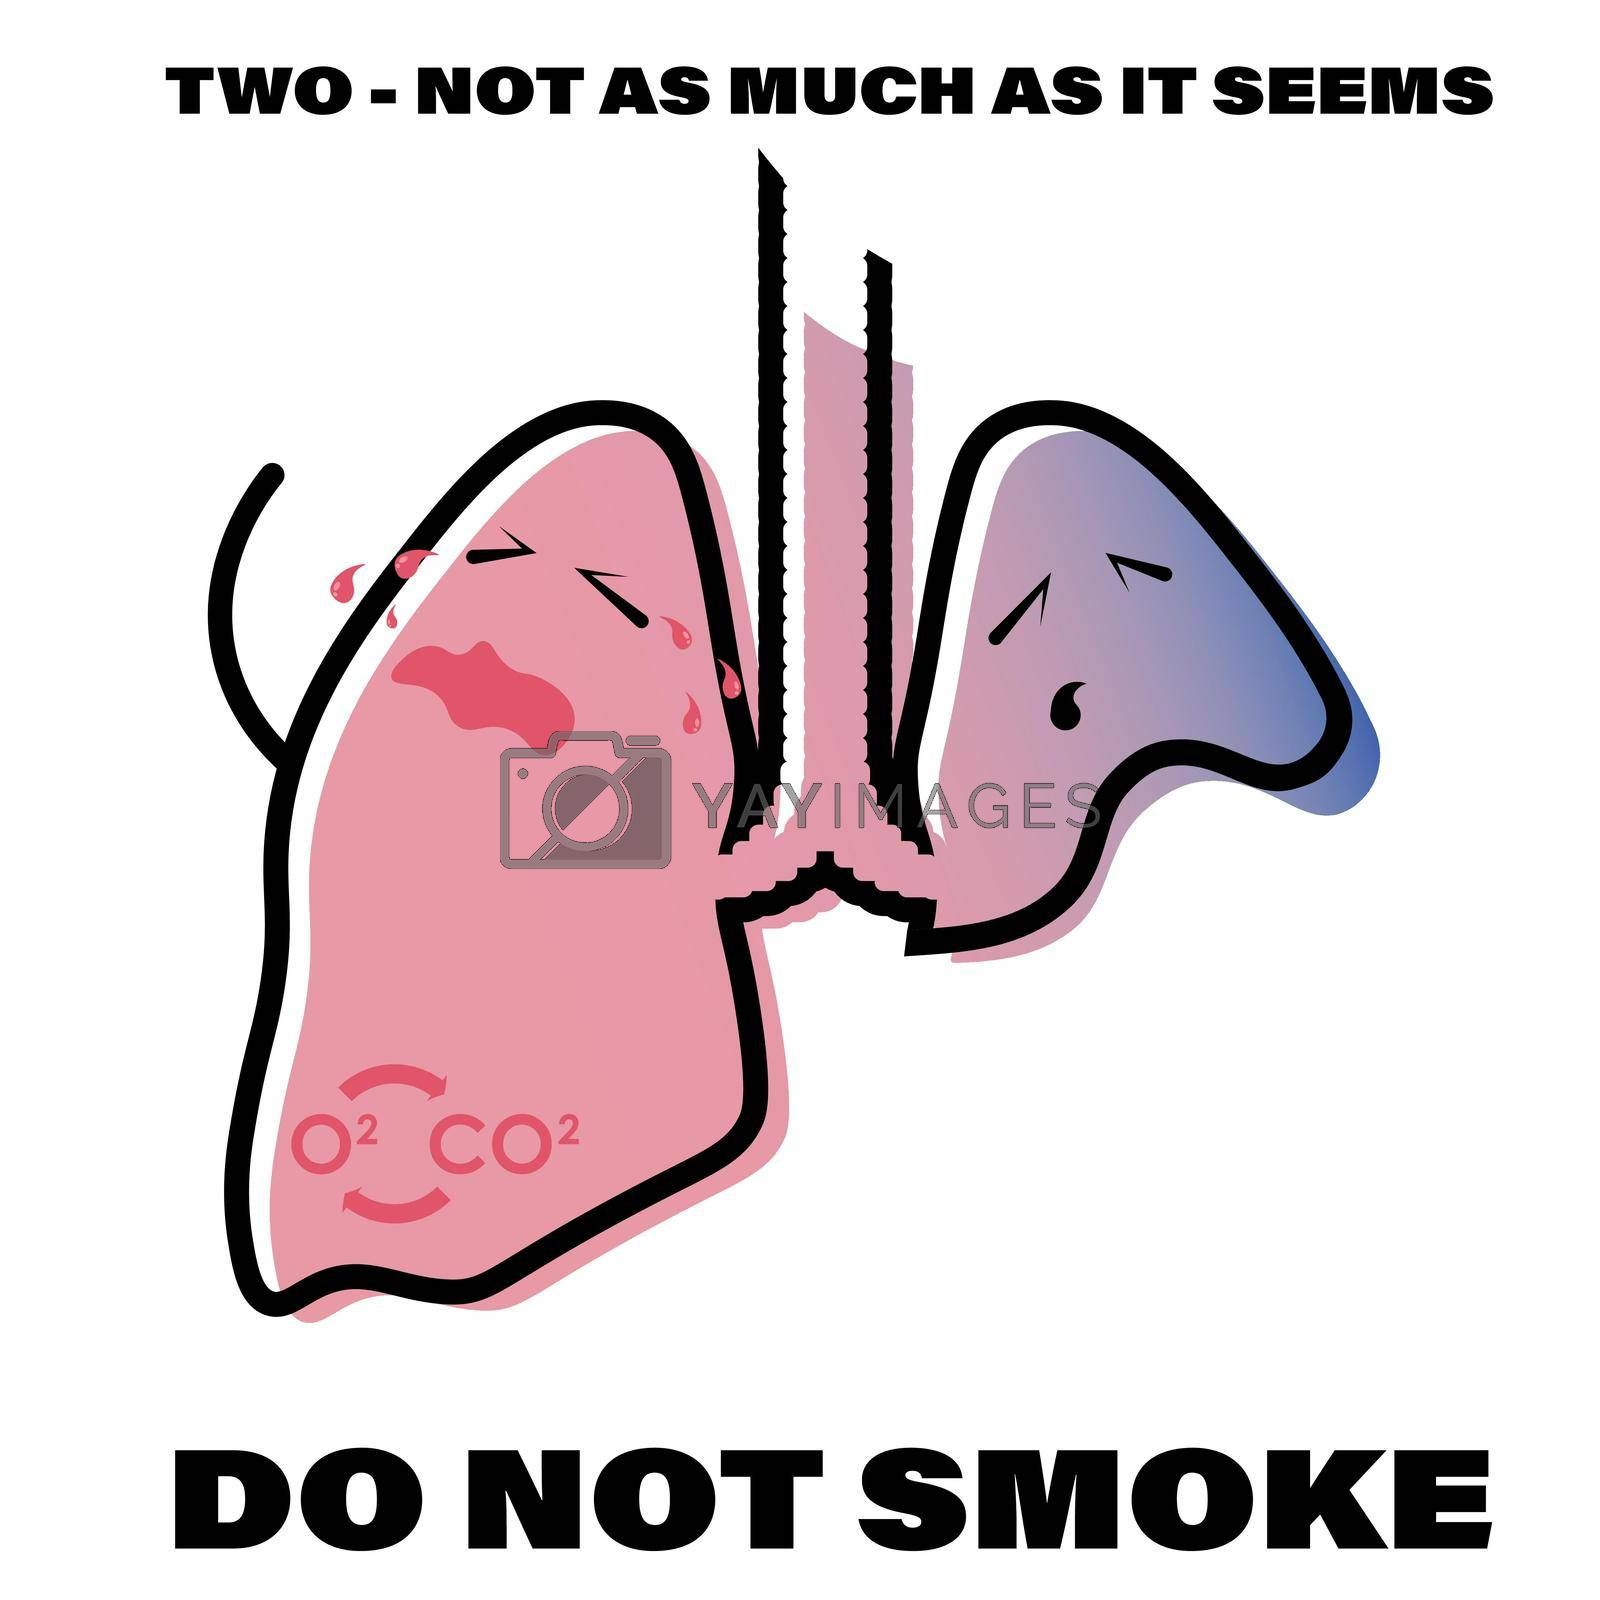 illustration about the dangers of smoking. Partial amputation of the lung. Prevention of respiratory diseases. Isolated vector